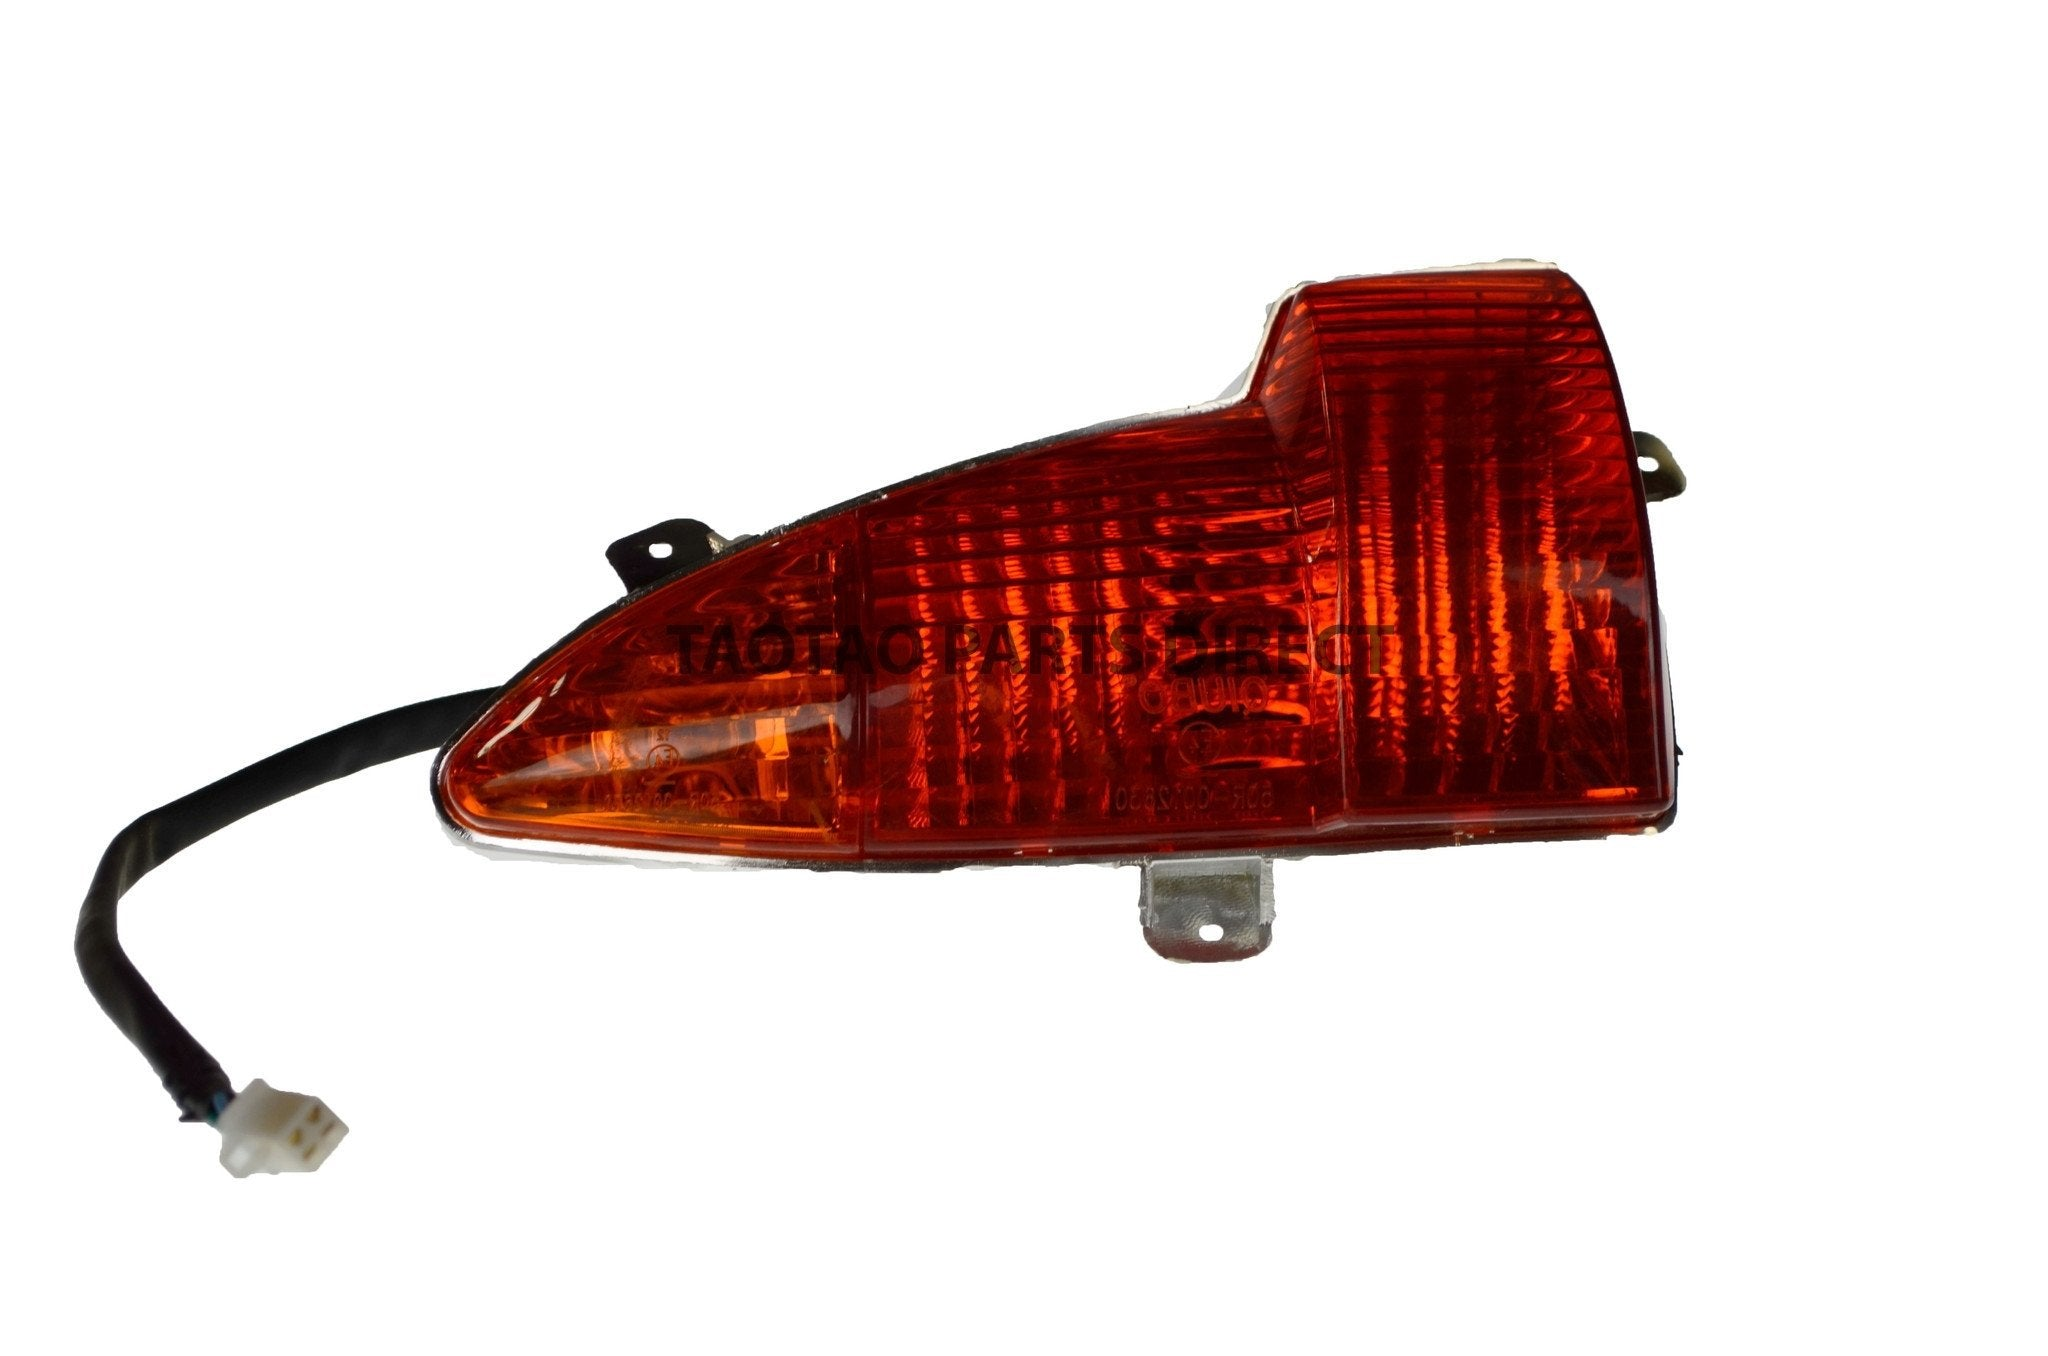 ATA300A1 Left Tail Light - TaoTaoPartsDirect.com